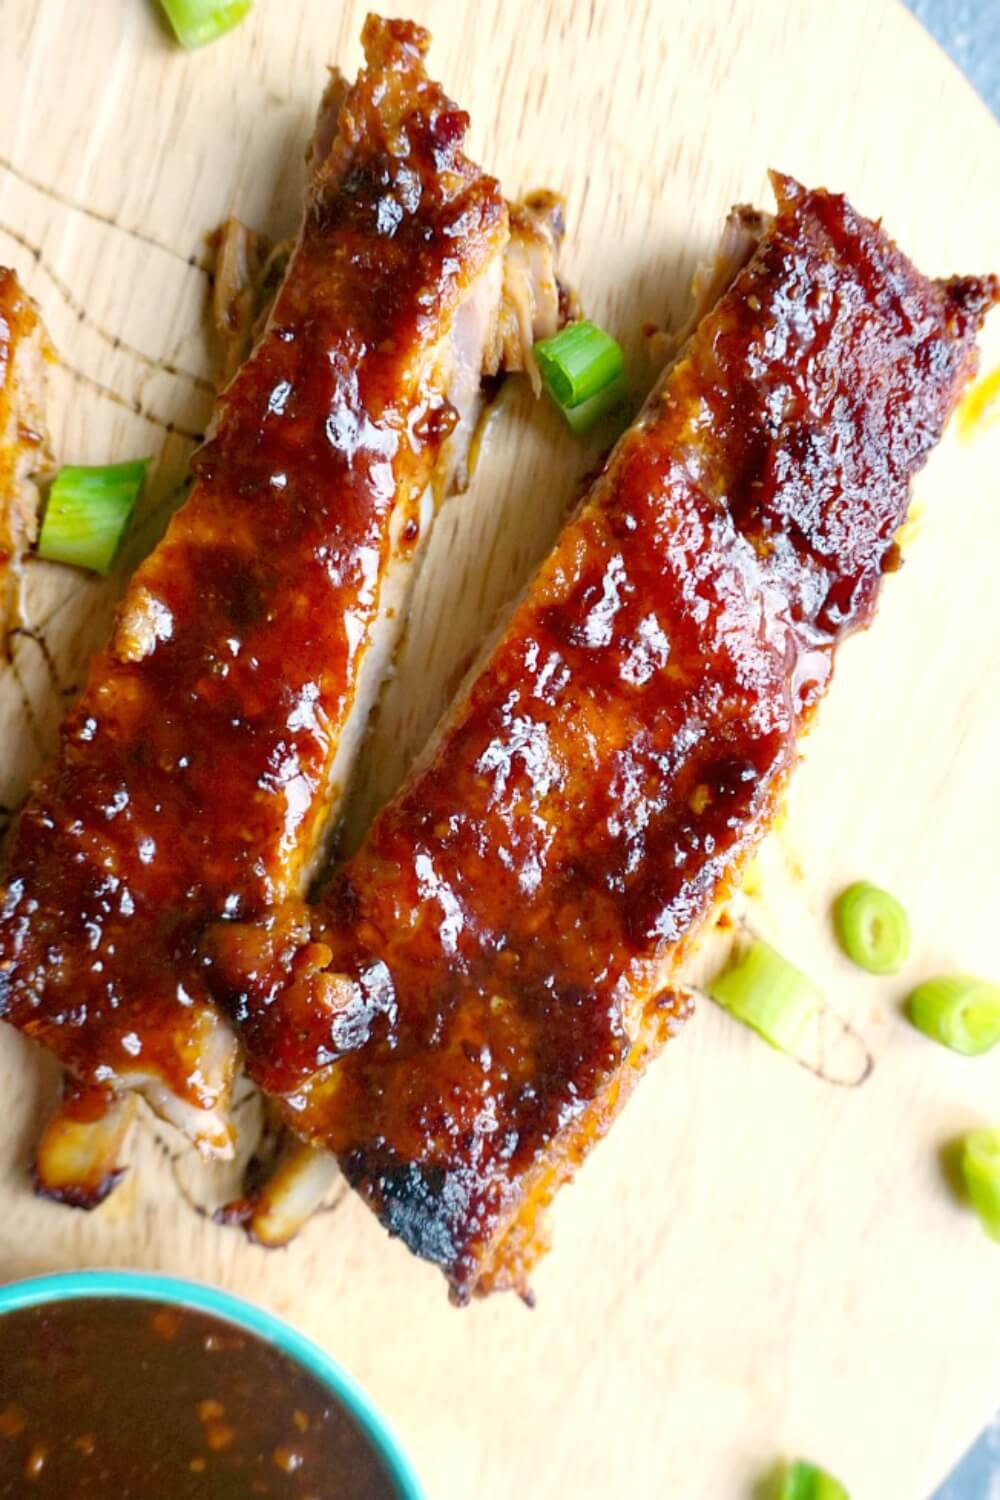 Easy Oven Baked Ribs with Sticky BBQ Sauce, the perfect finger food to feed a crowd. These pork ribs are perfect for Game Day or any other party or celebration. It might be a simple recipe, but these BBQ ribs are heavenly flavourful, and the Asian touch takes them to the very next level. The best ribs for Superbowl, they can be easily made with any other sauce of your choice. #porkribs, #bakeribs, #superbowlfood, #gamedayrecipes,#bbqsauce